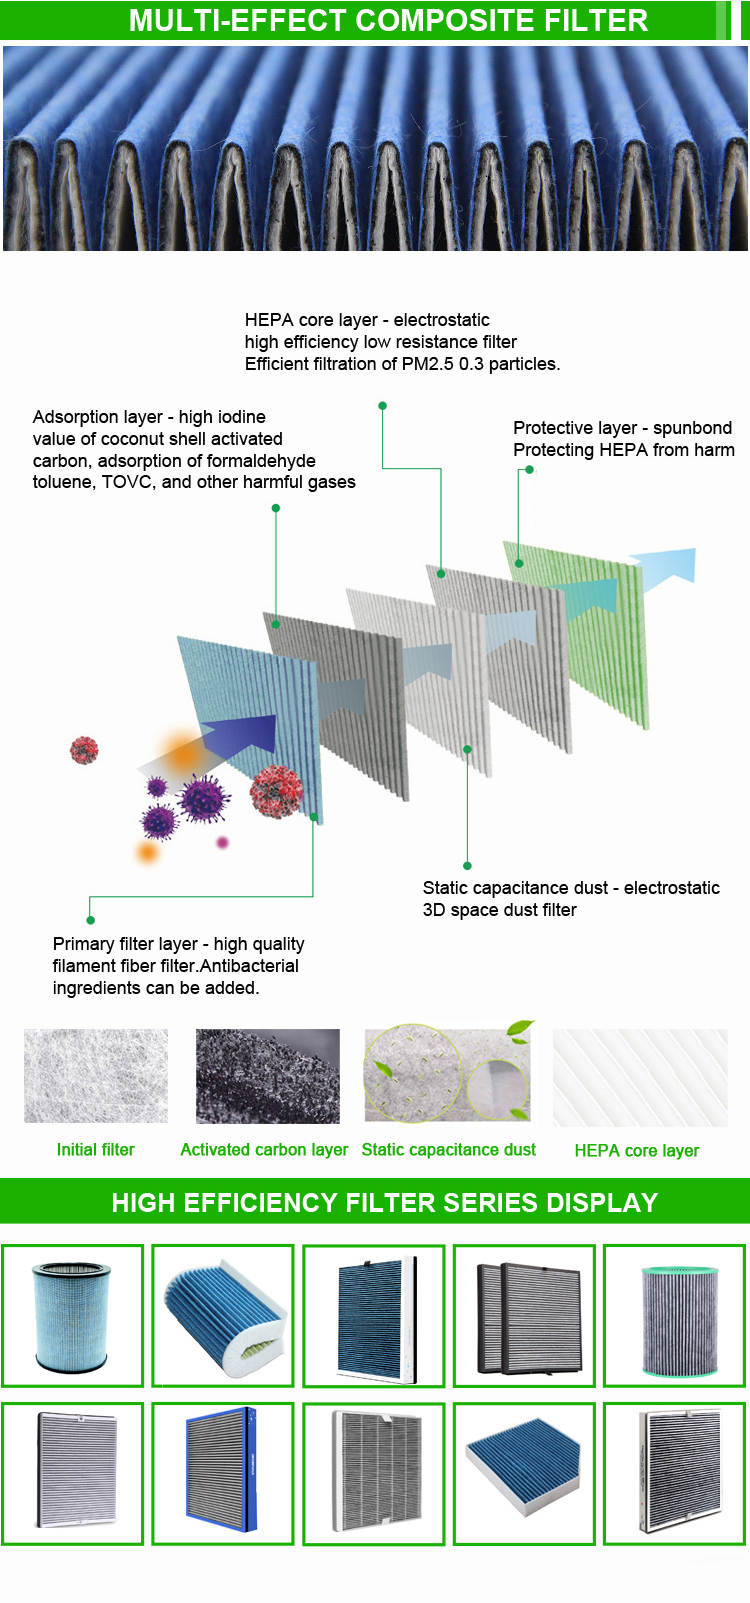 HEPA core layer - electrostatic  high efficiency low resistance filter Efficient filtration of PM2.5 0.3 particles.Adsorption layer - high iodine  value of coconut shell activated carbon, adsorption of formaldehyde toluene, TOVC, and other harmful gases、Protective layer - spunbond Protecting HEPA from harm